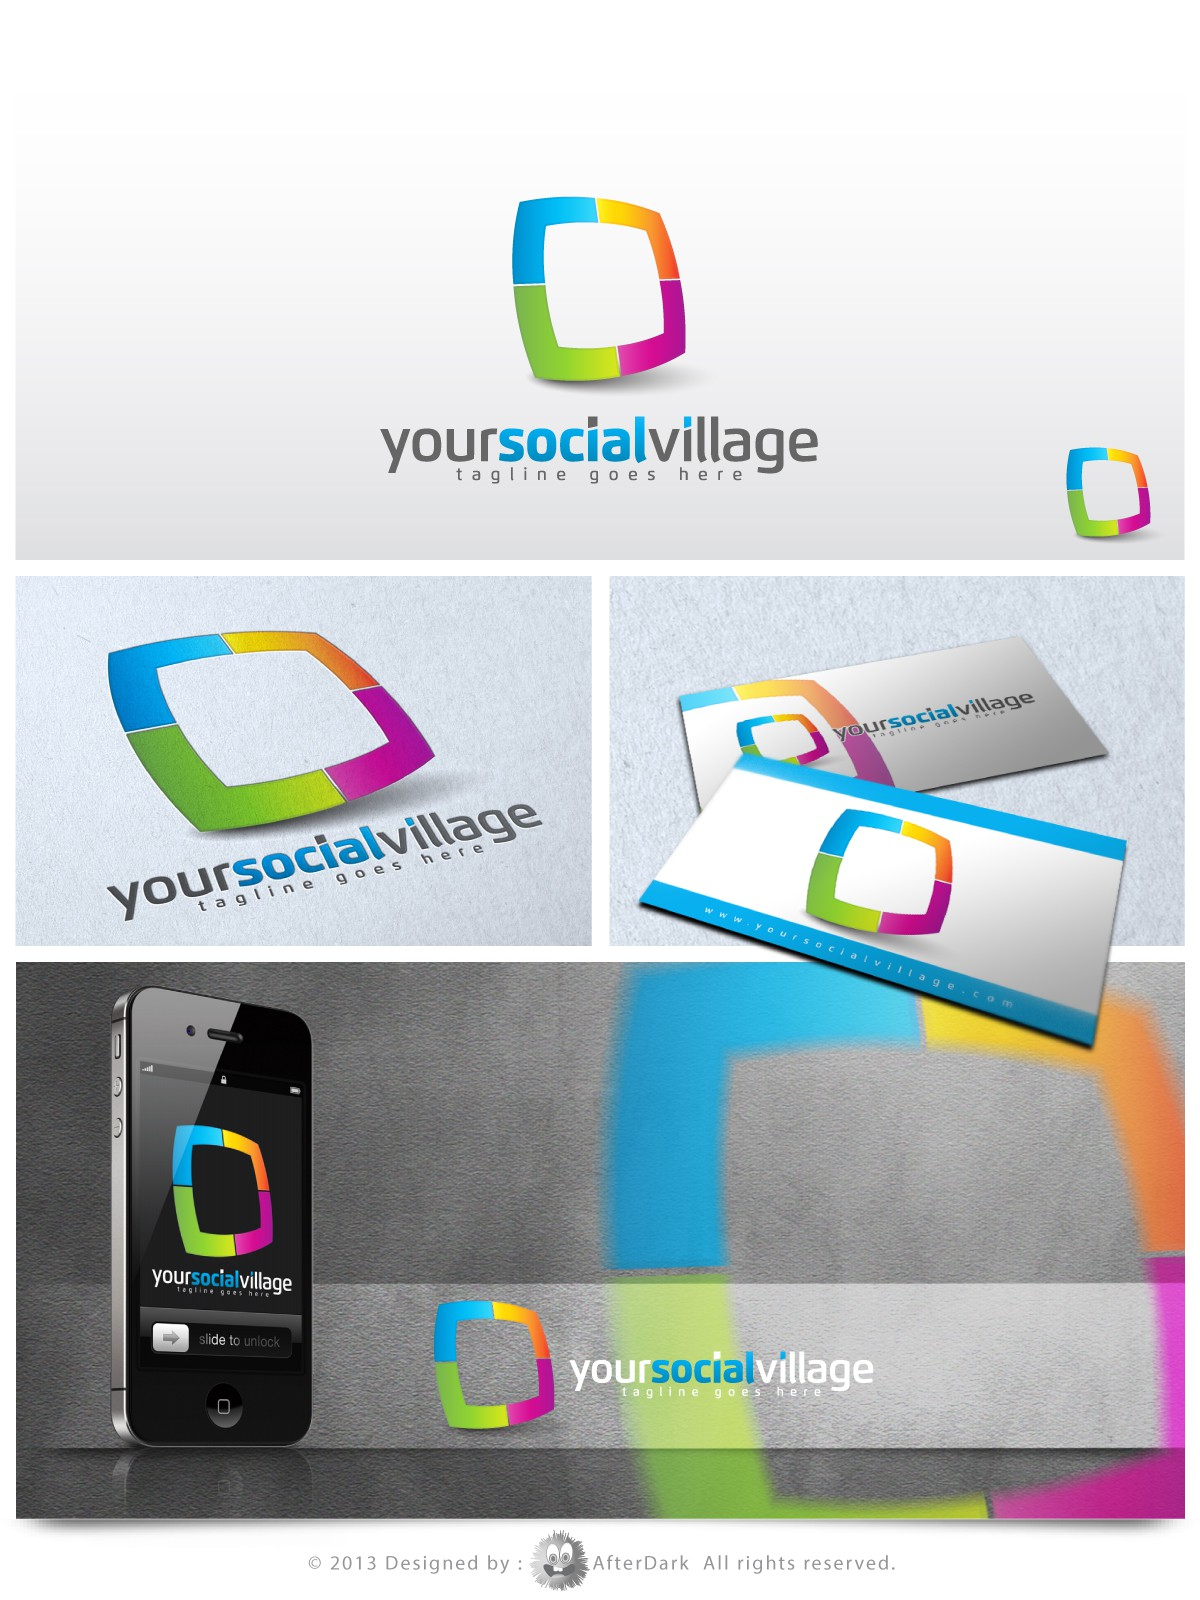 New logo wanted for Your Social Village